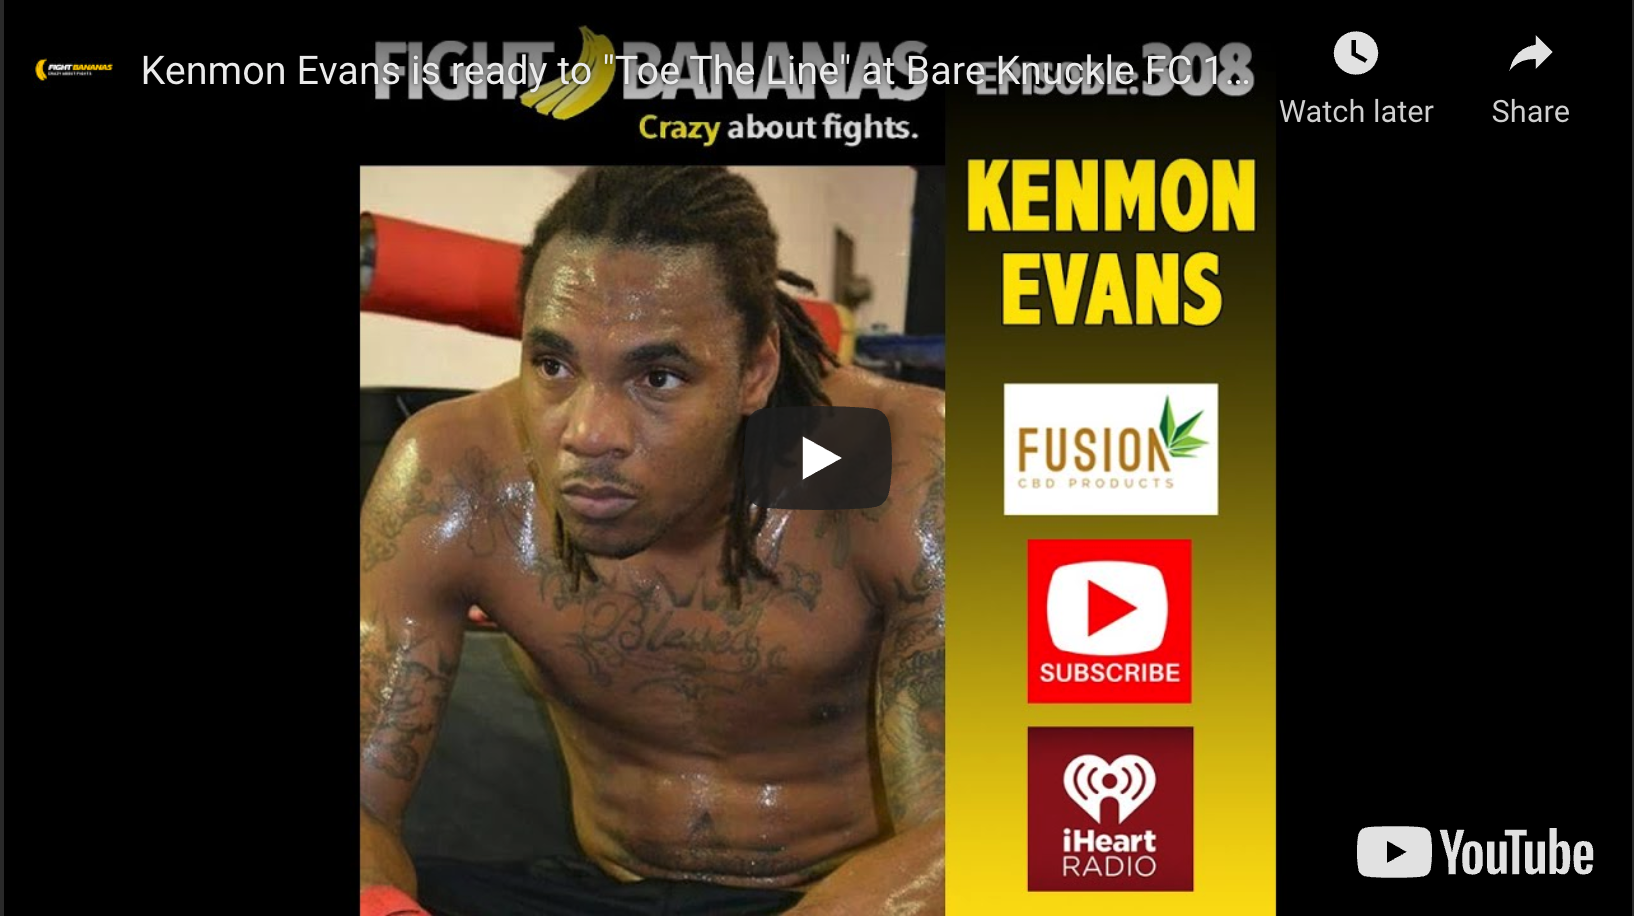 Boxer, Kenmon Evans, makes leap to bare knuckle at BKFC 12, after two and a half year layoff